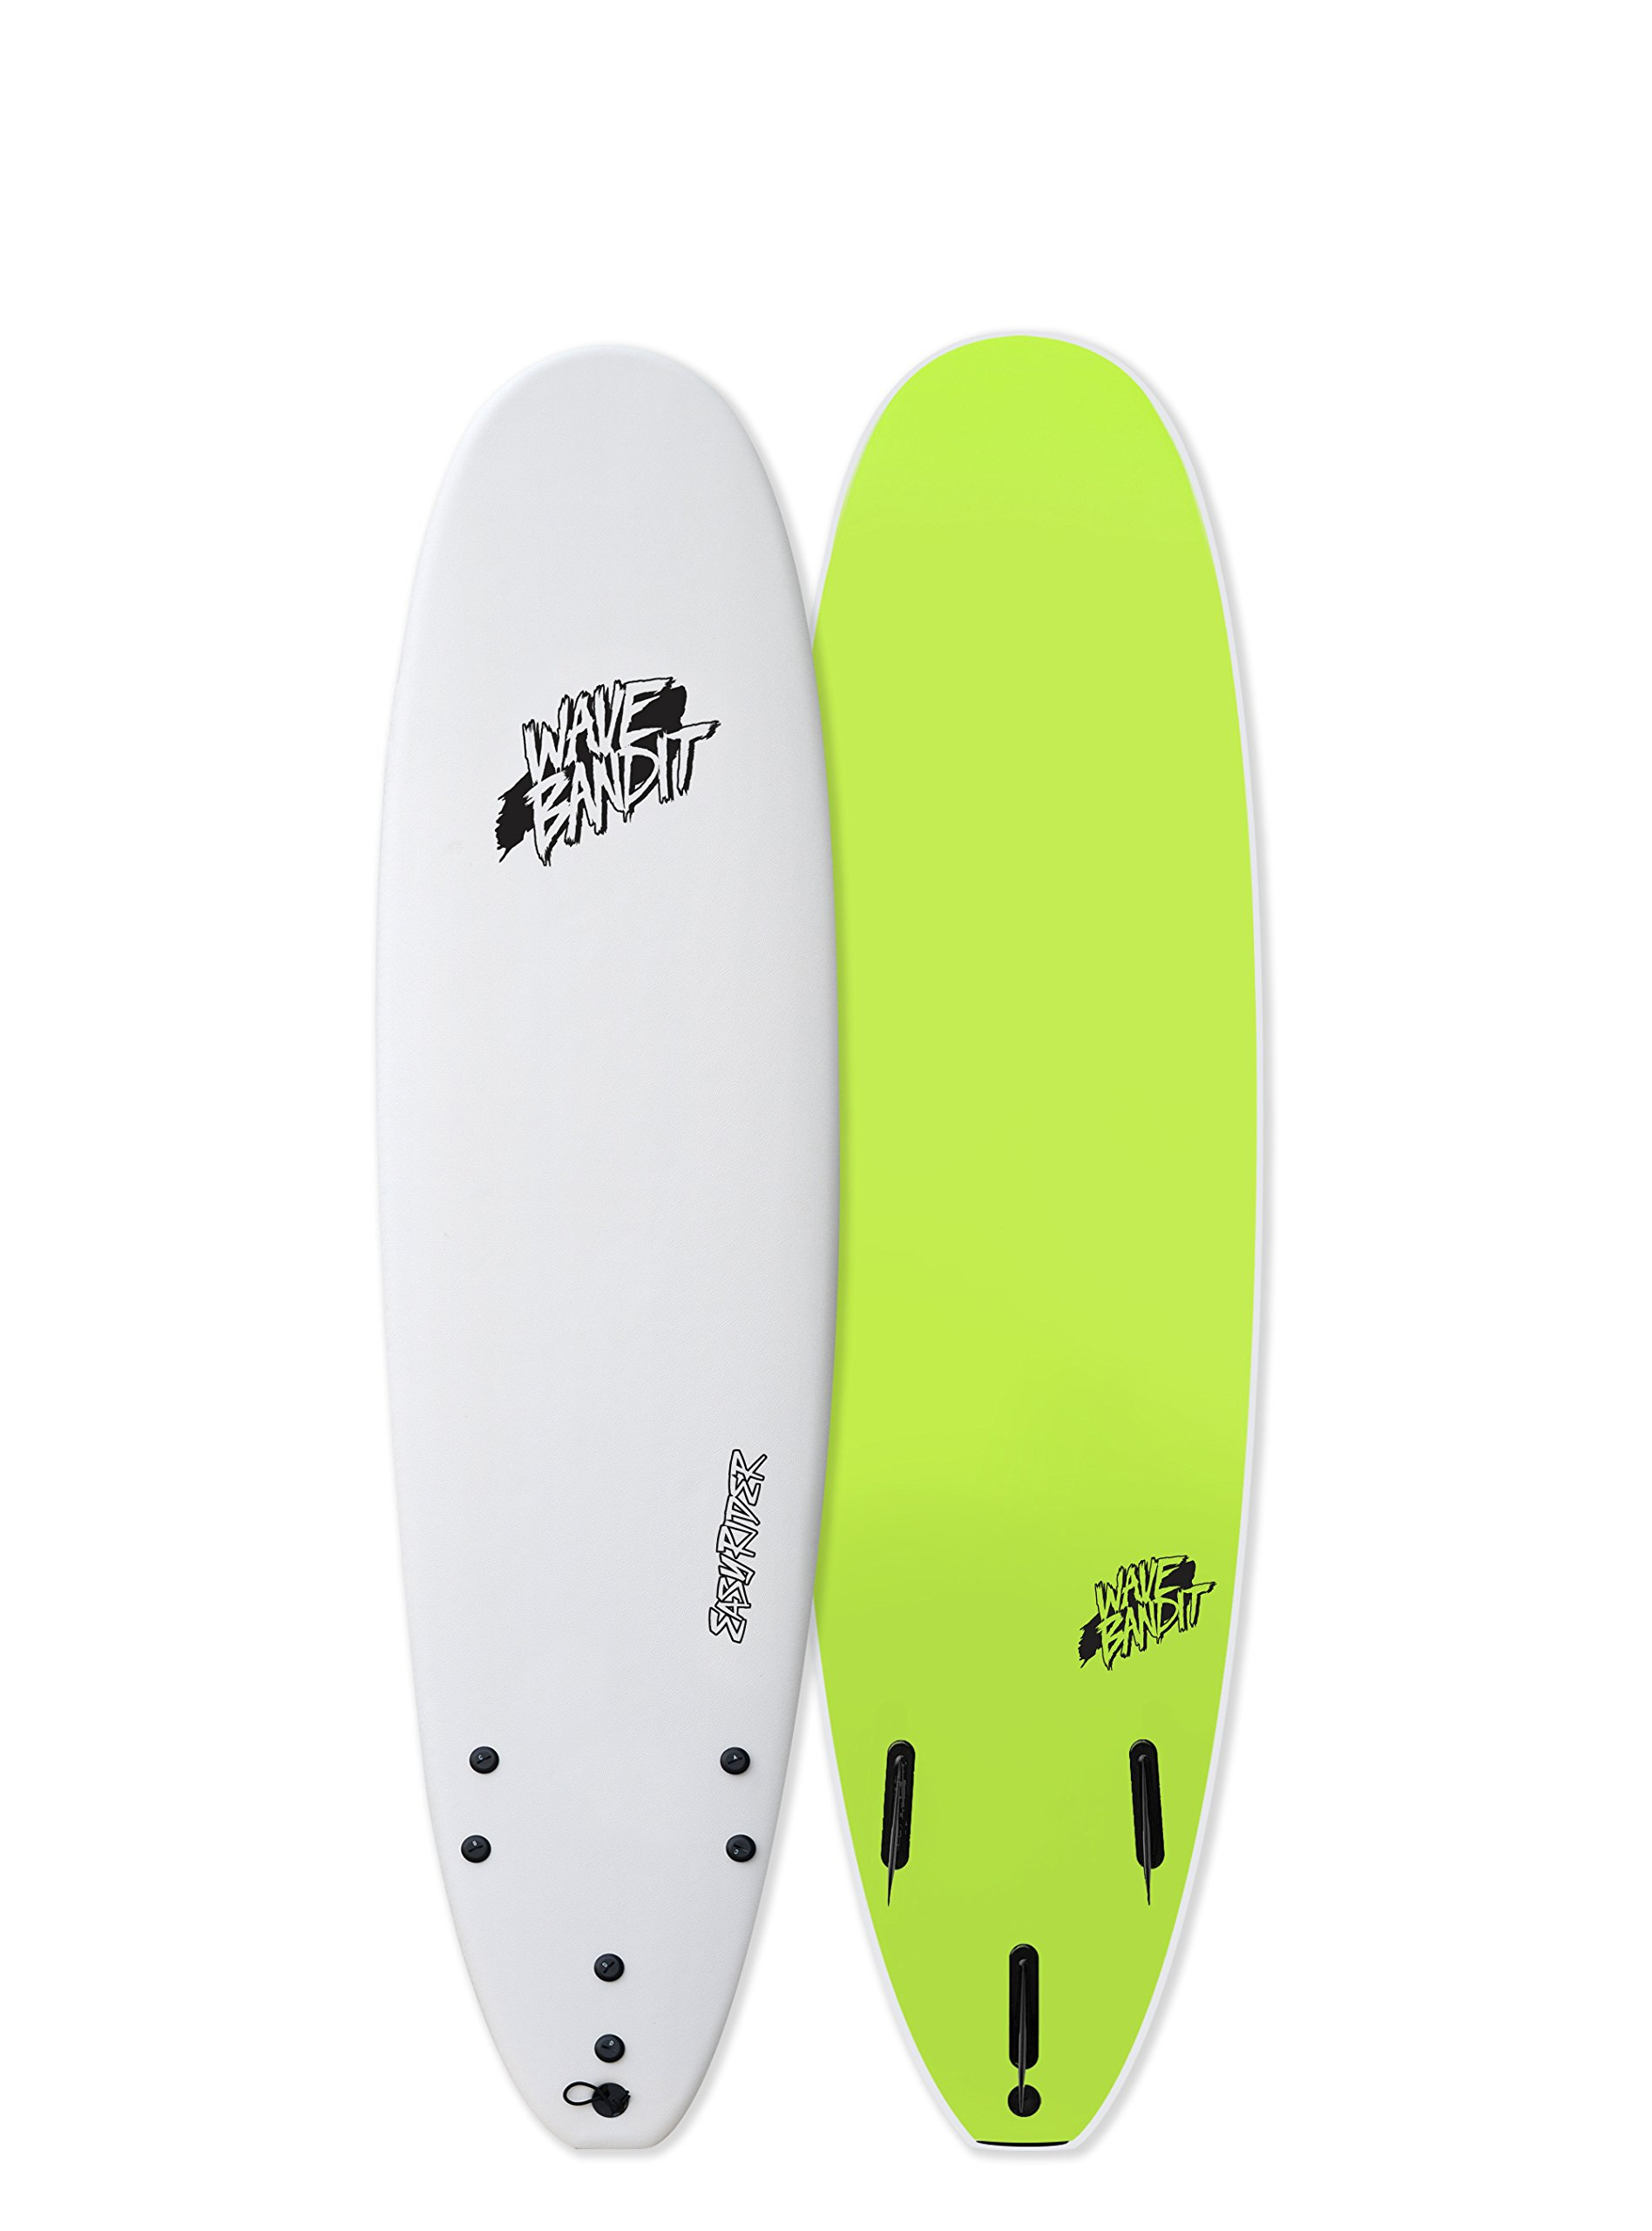 Catch Surf Wave Bandit EZ Rider 7'0'' Short Surf Board, White